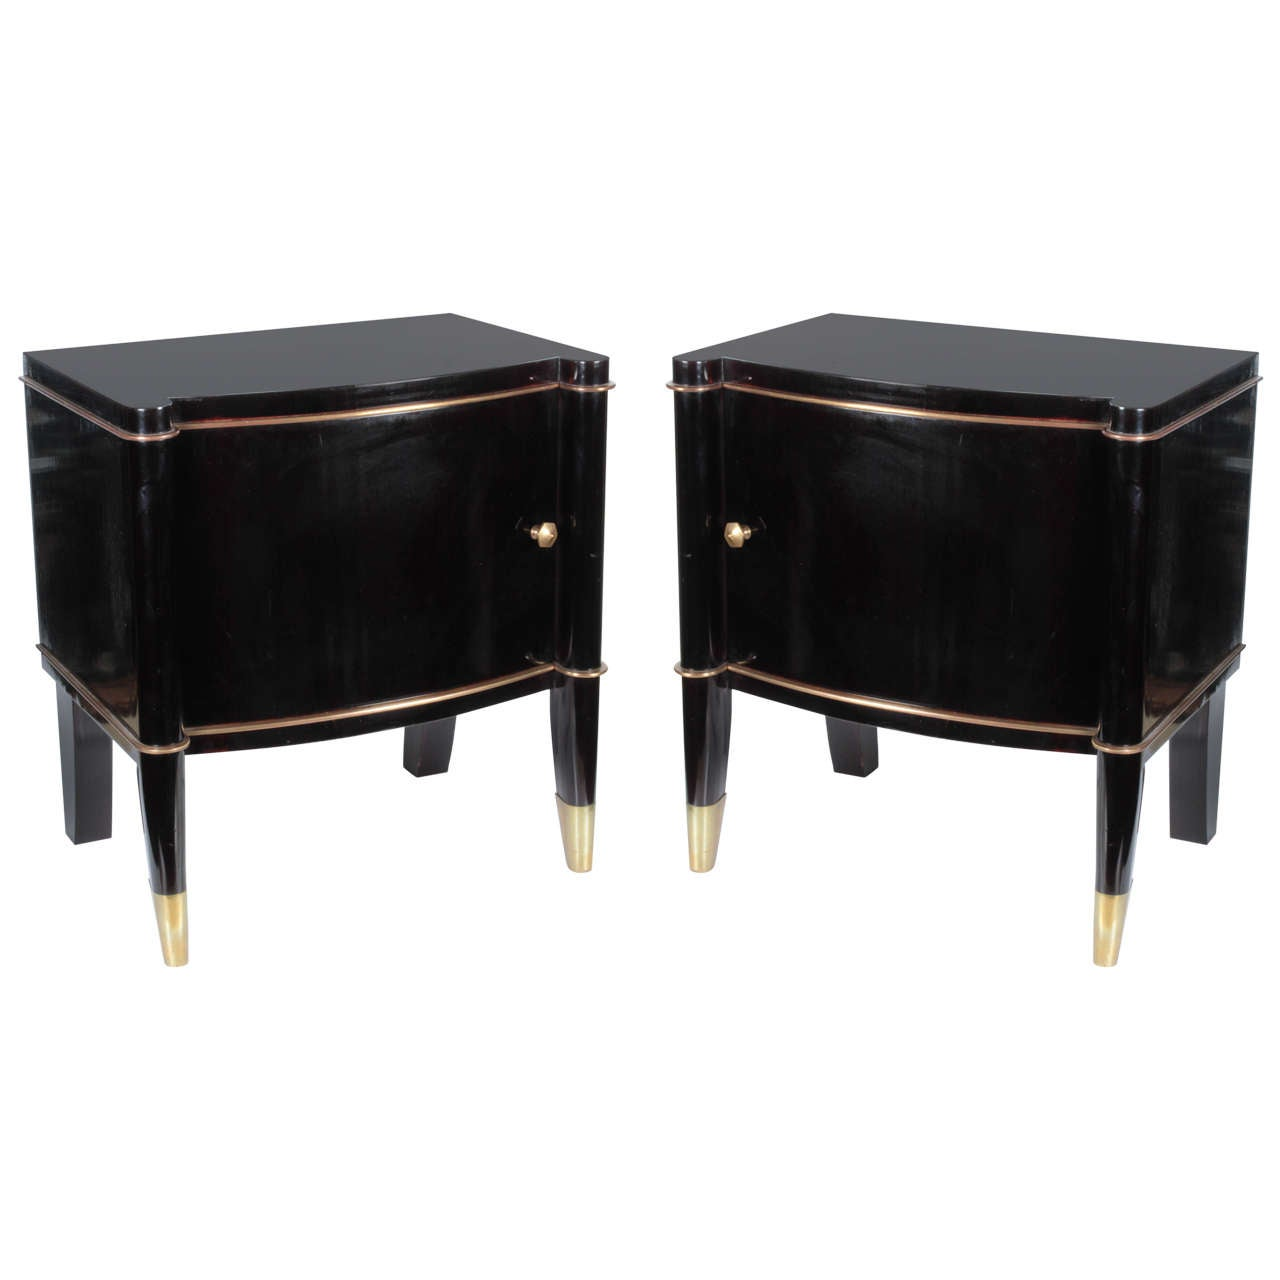 Pair of Antique French Art Deco Black Lacquer and Gilt Bronze Side Cabinets